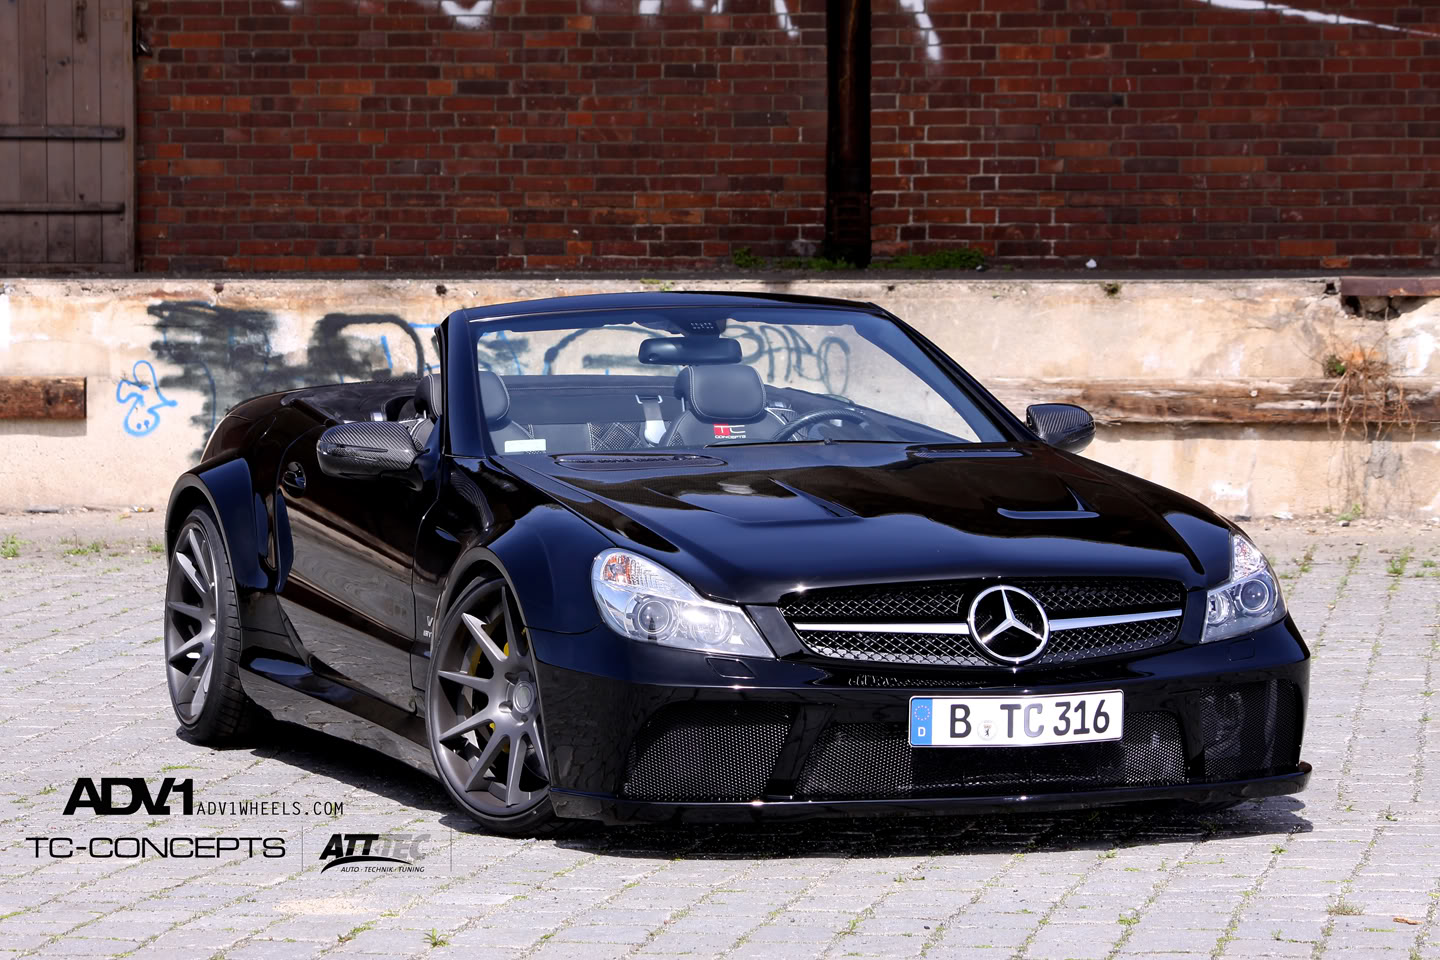 2010 Tc Concepts Sl65 Amg Black S 233 Ries Dark Cars